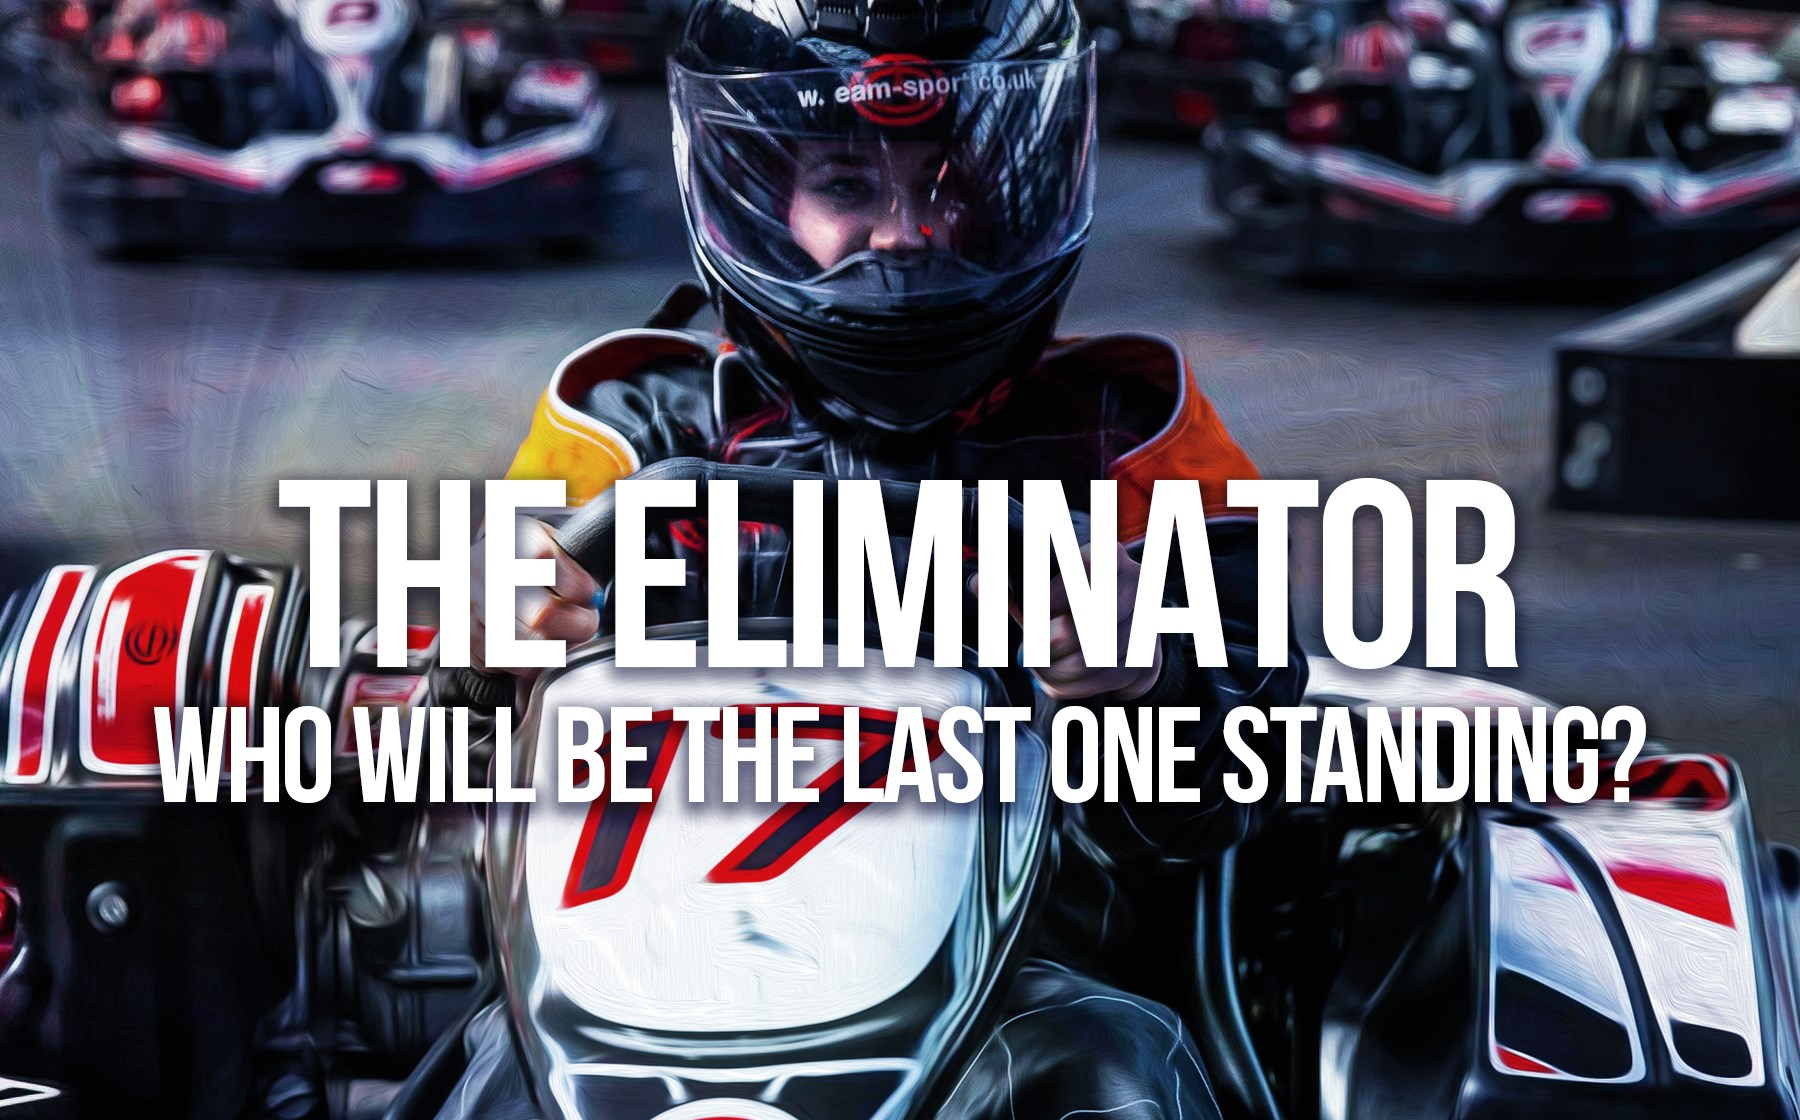 GO KART RACING FOR 1-12 DRIVERS - The Eliminator